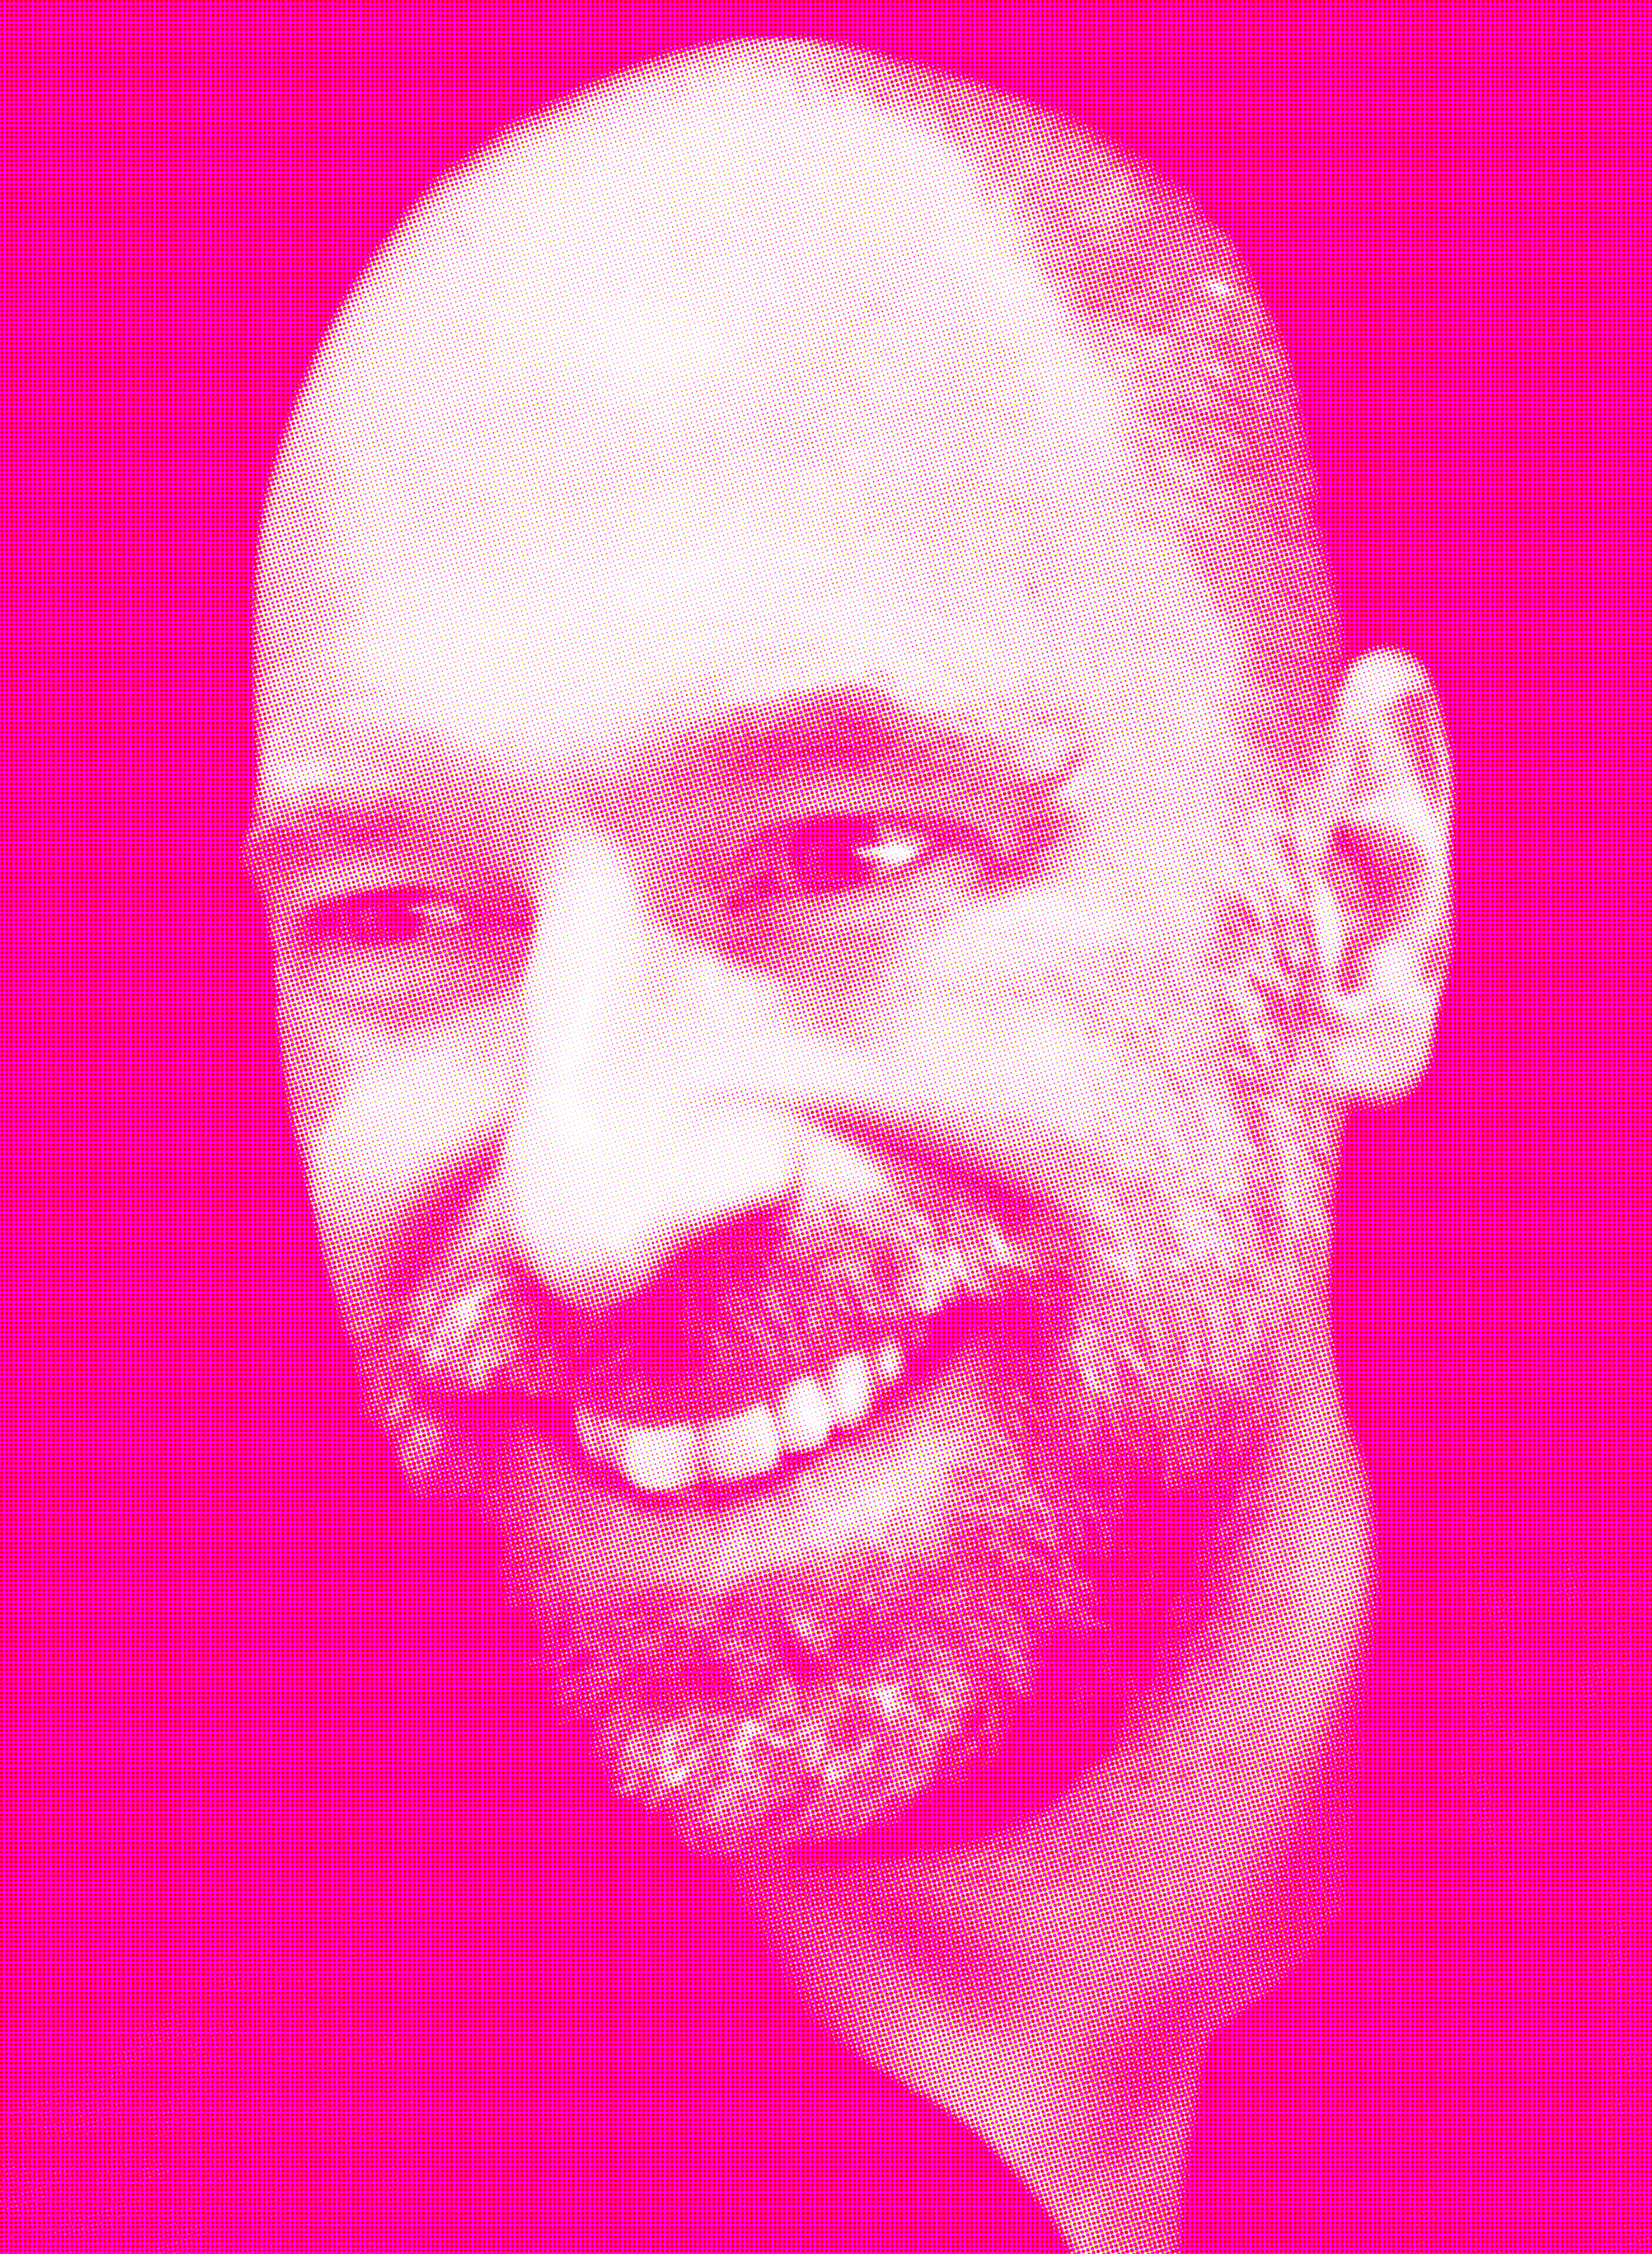 MJF-Author-Photo-HIGHRES_PINK_Halftone.png